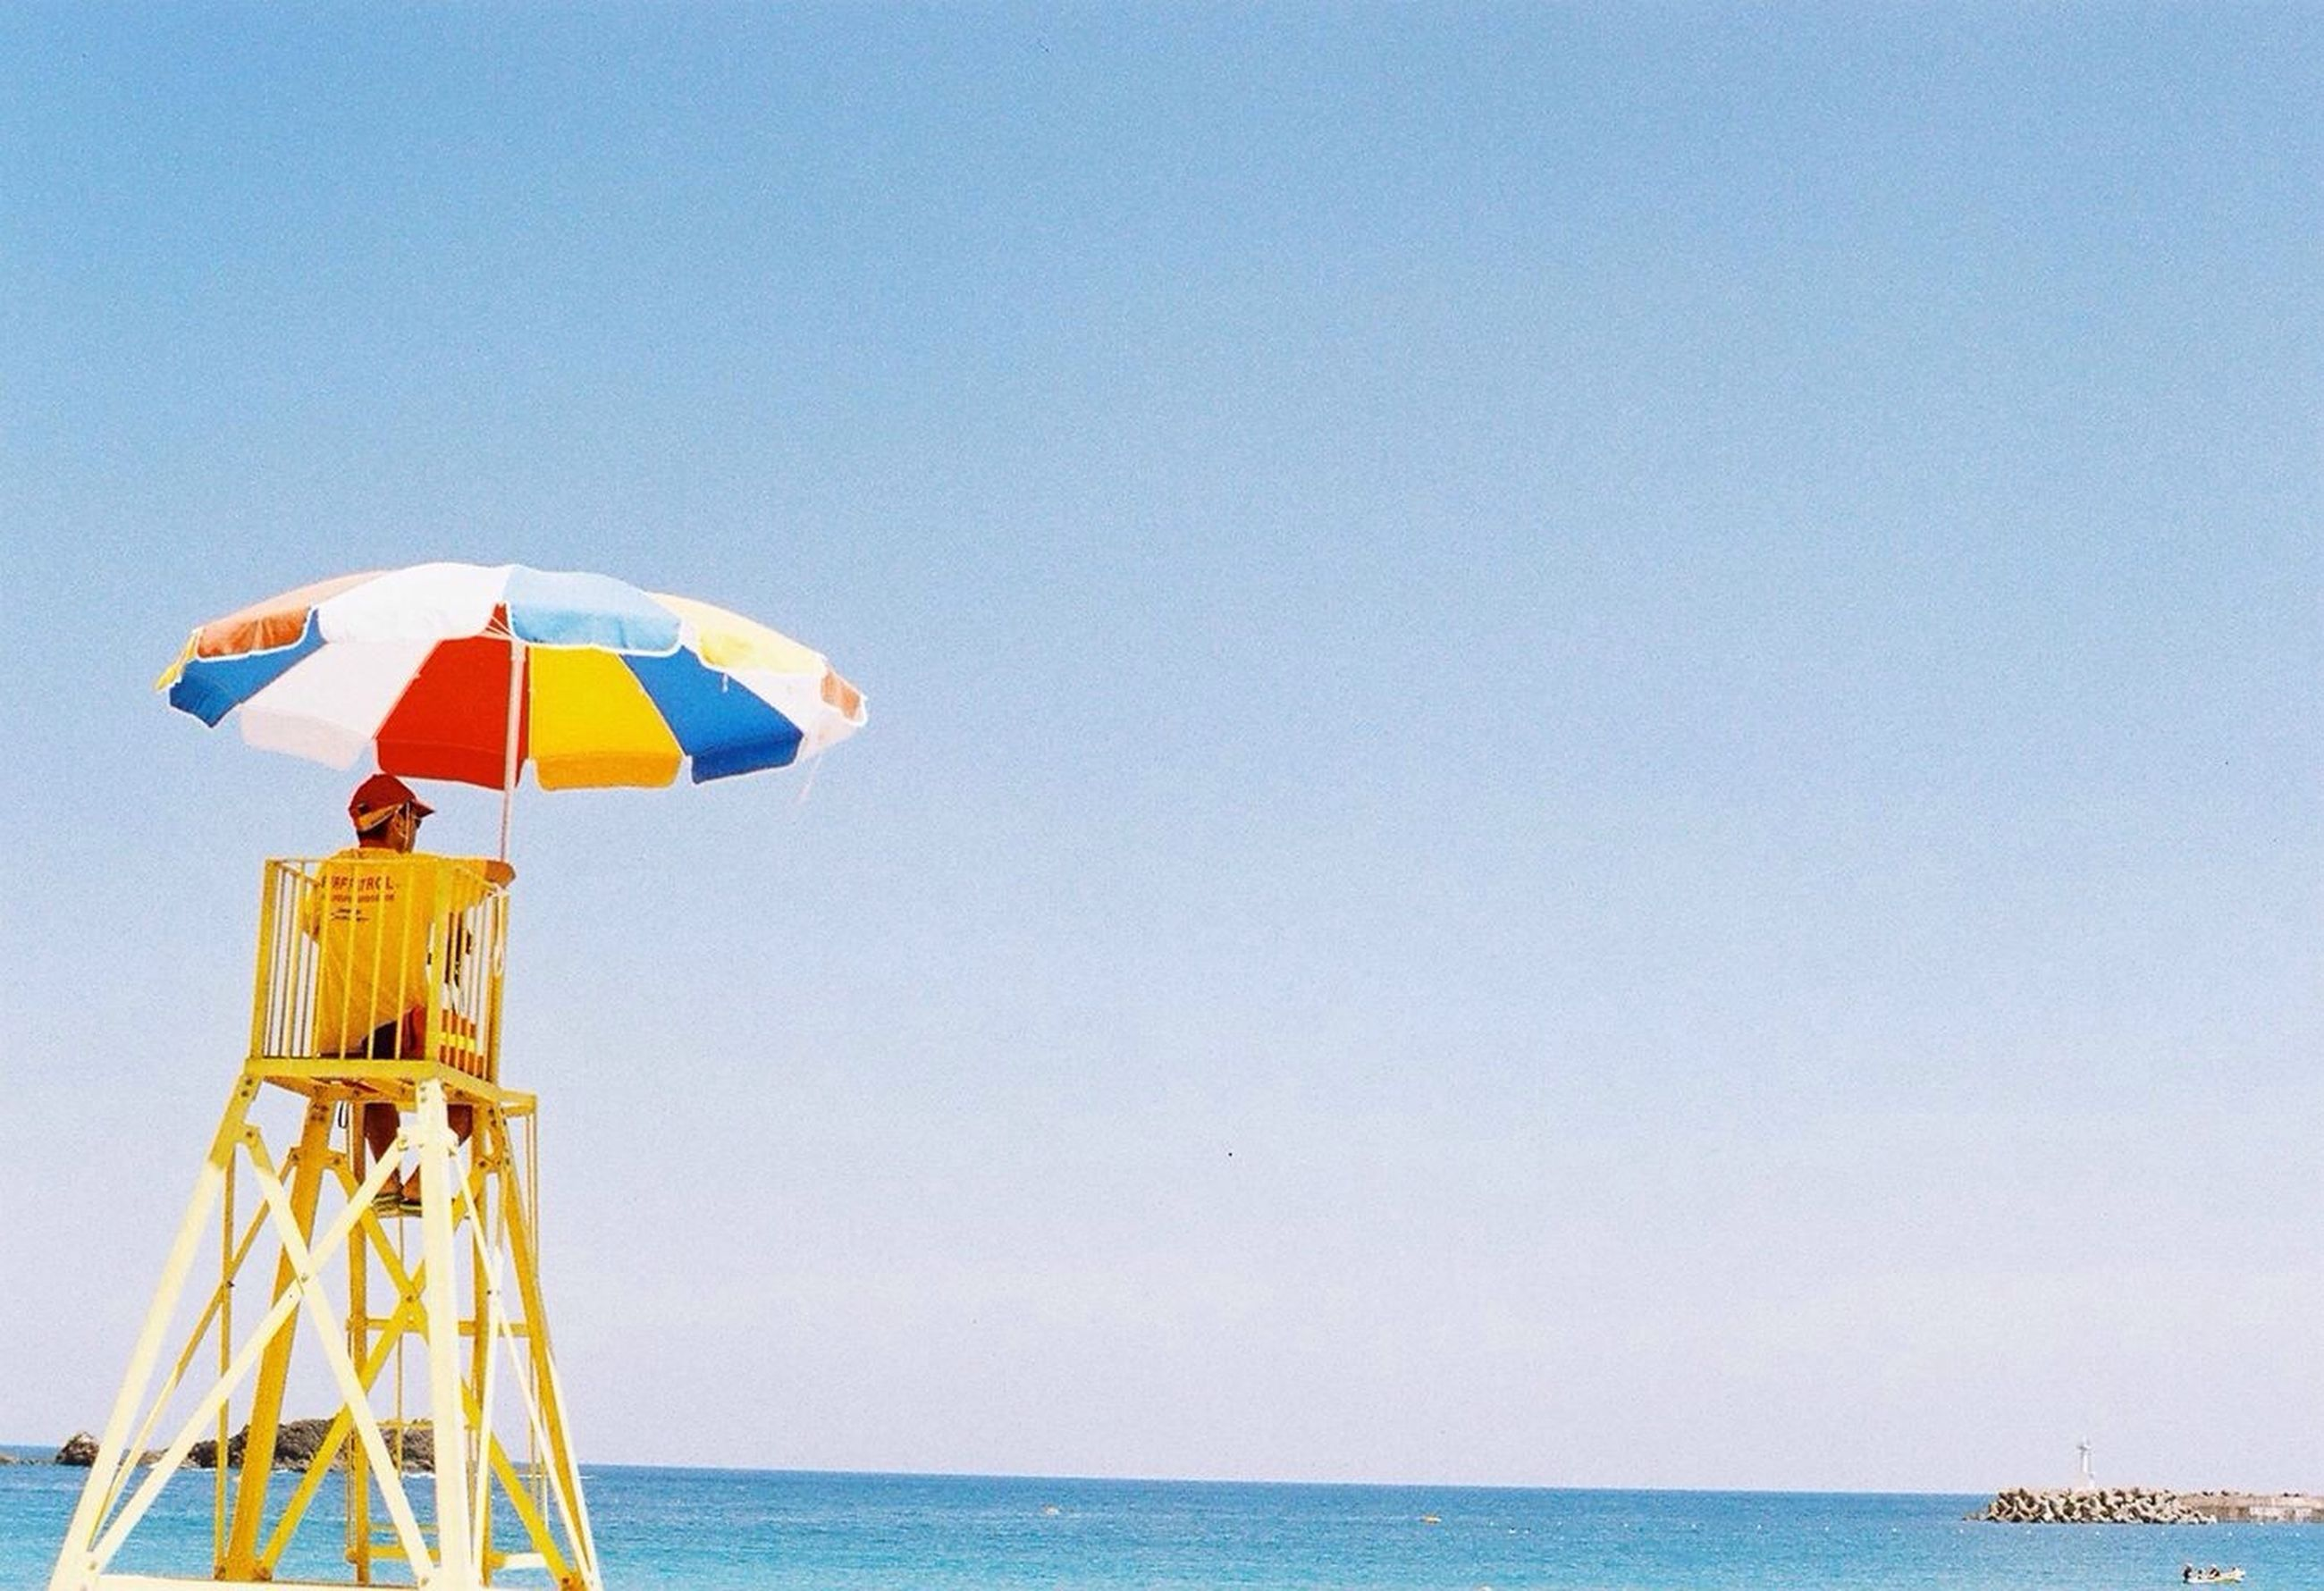 sea, clear sky, horizon over water, water, copy space, blue, beach, tranquility, tranquil scene, scenics, flag, nautical vessel, nature, transportation, beach umbrella, beauty in nature, sky, protection, vacations, day